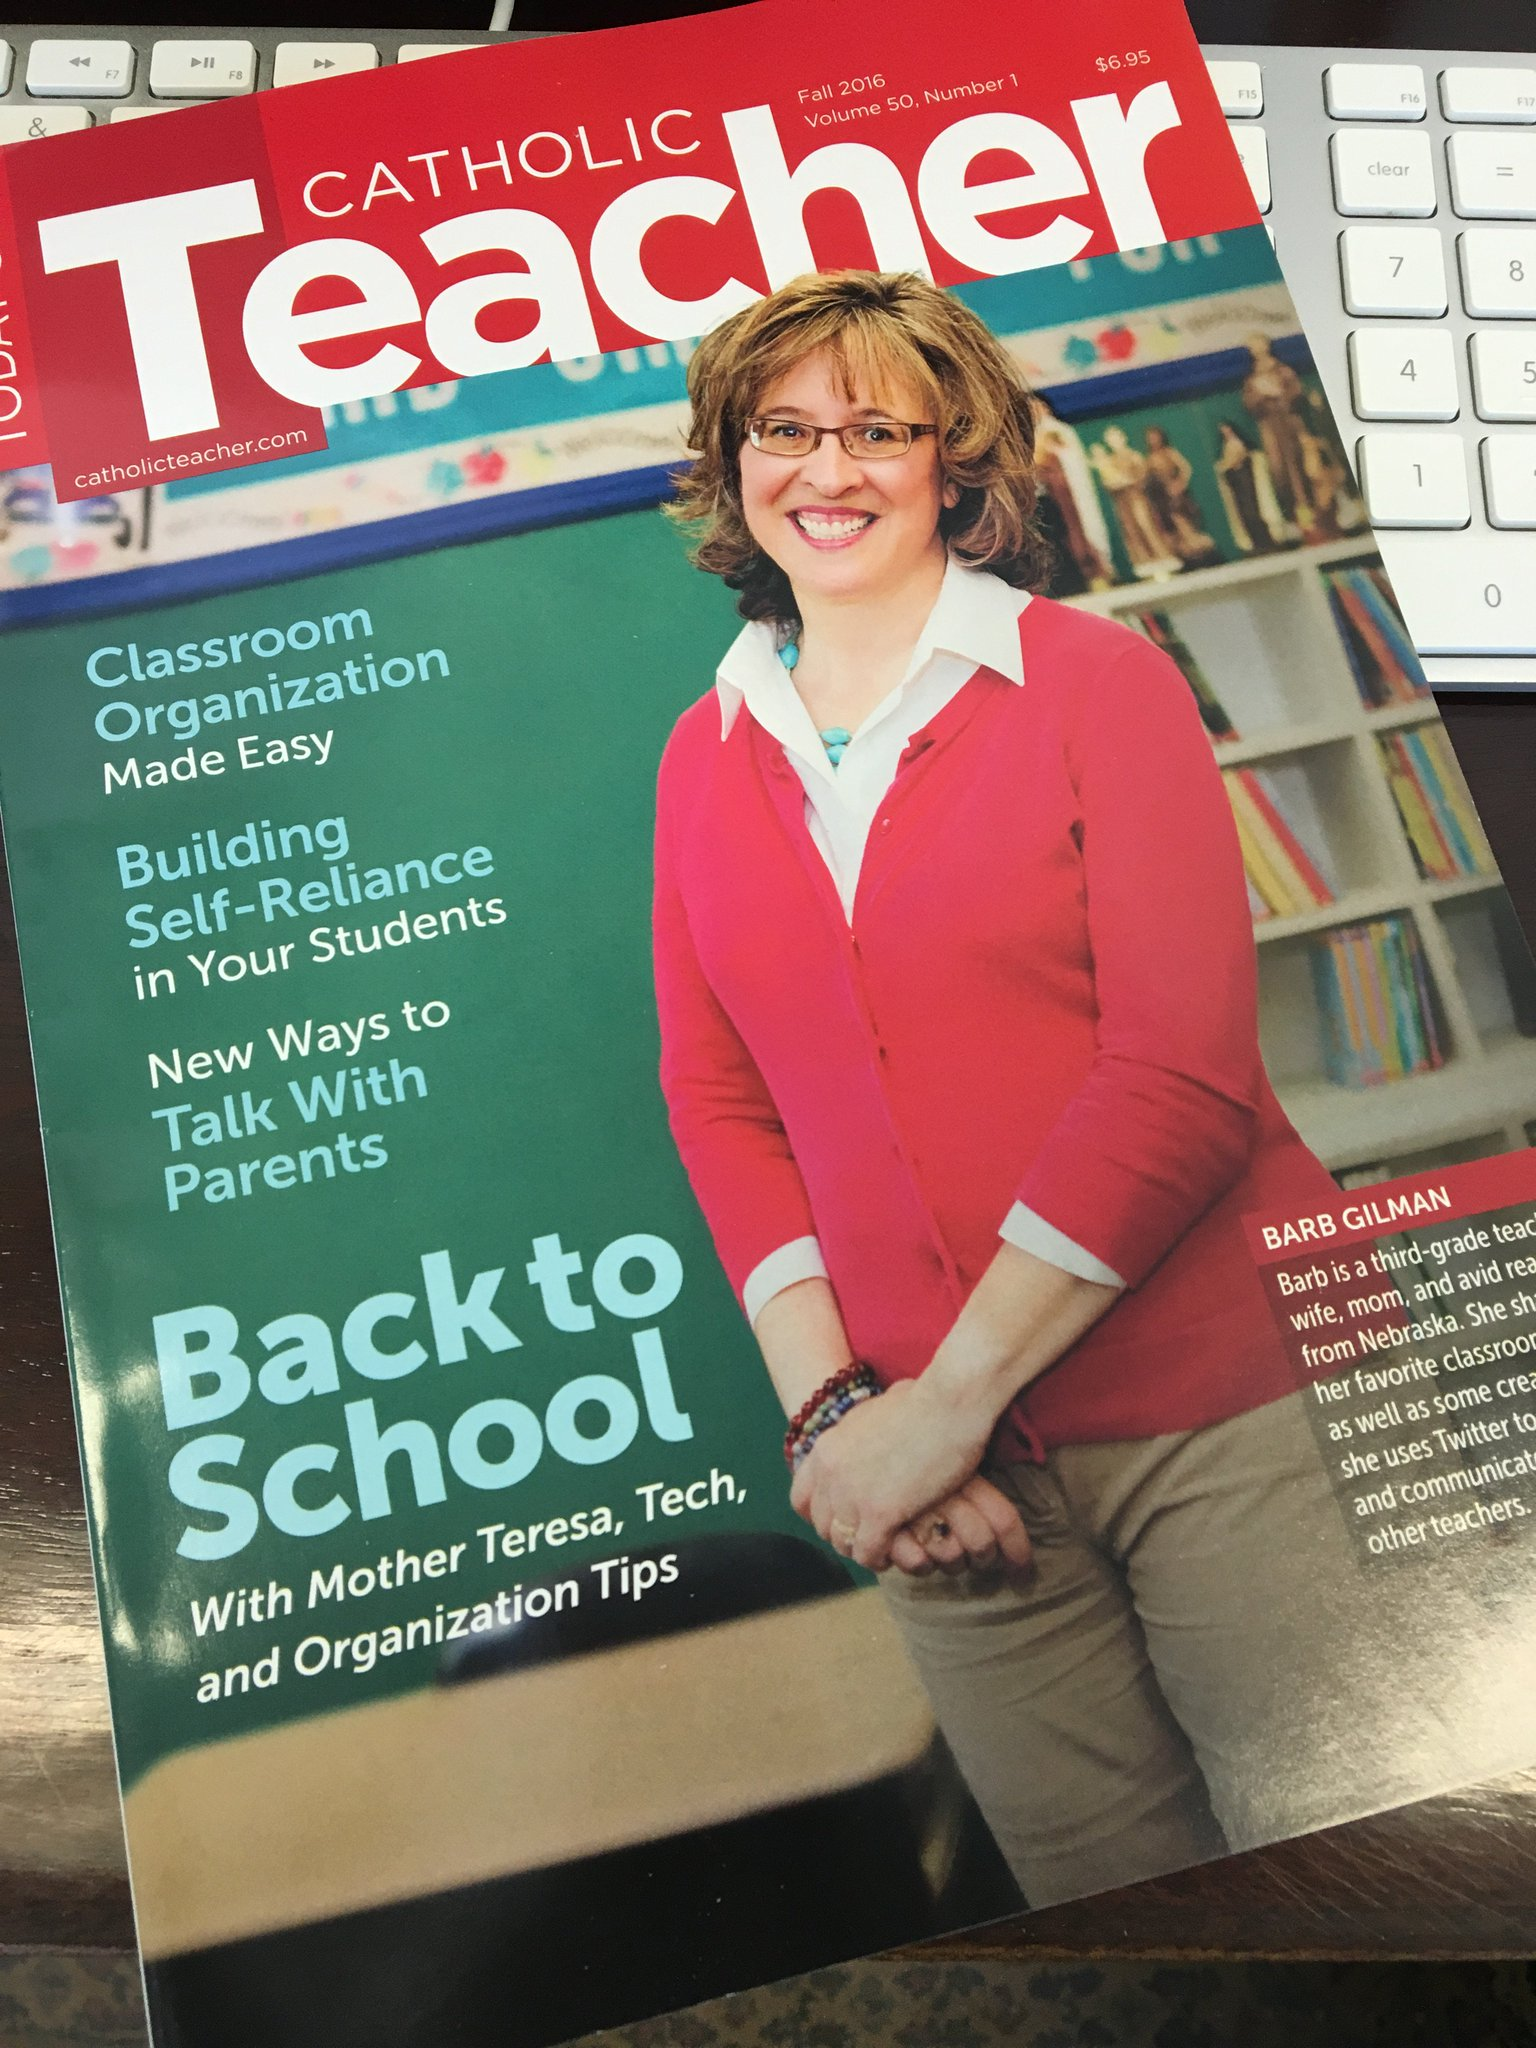 Wow! Super excited to see my #CatholicEdChat pal @BarbInNebraska on the cover of Today's Catholic Teacher magazine! https://t.co/d7nO4Cld0j